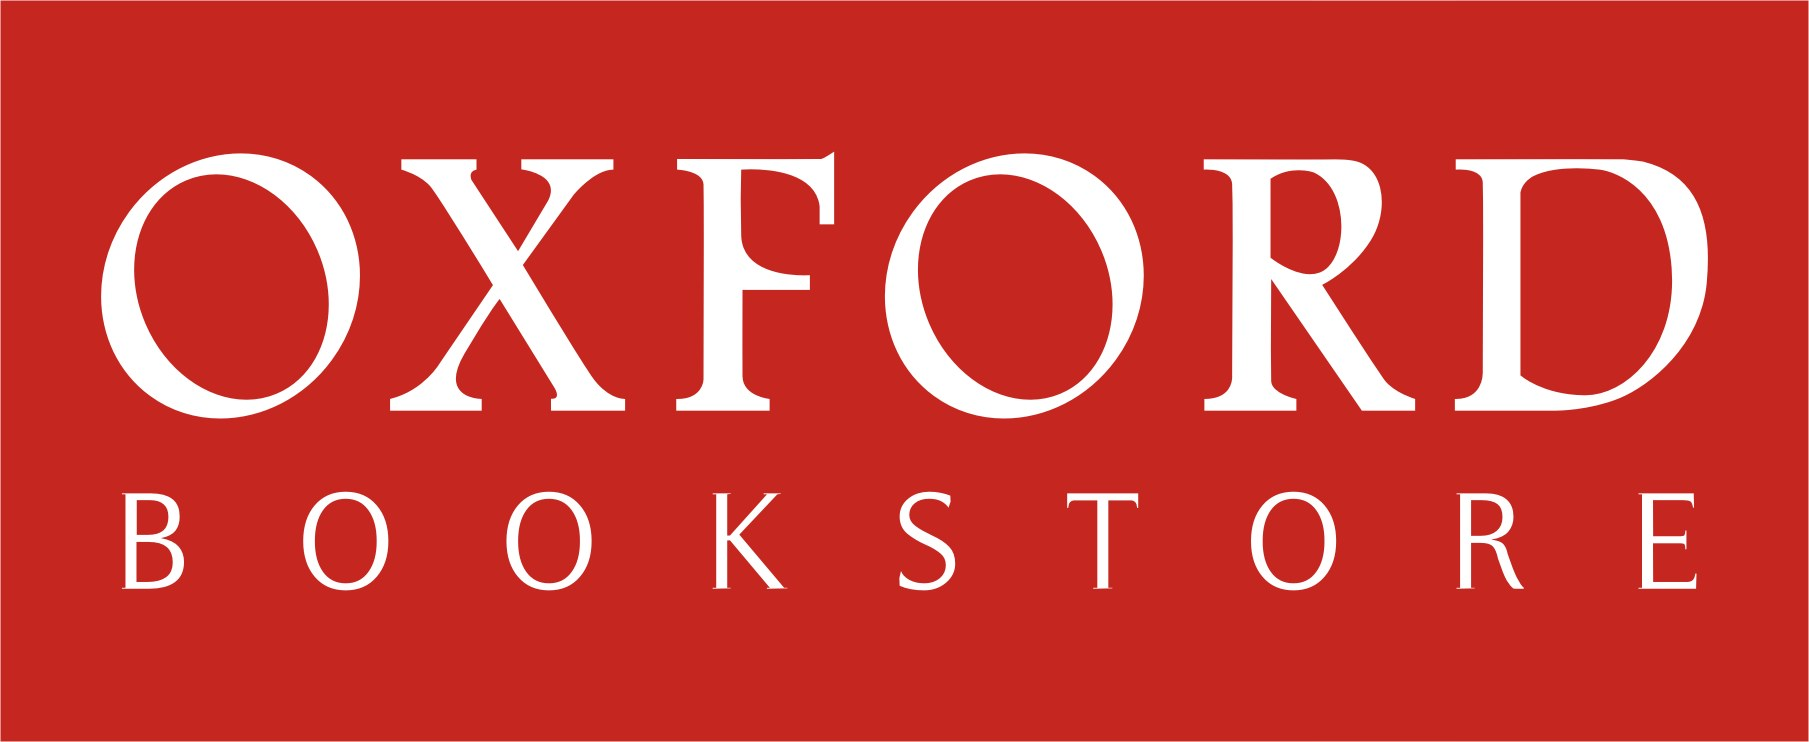 Oxford Bookstore - Kolkata Image